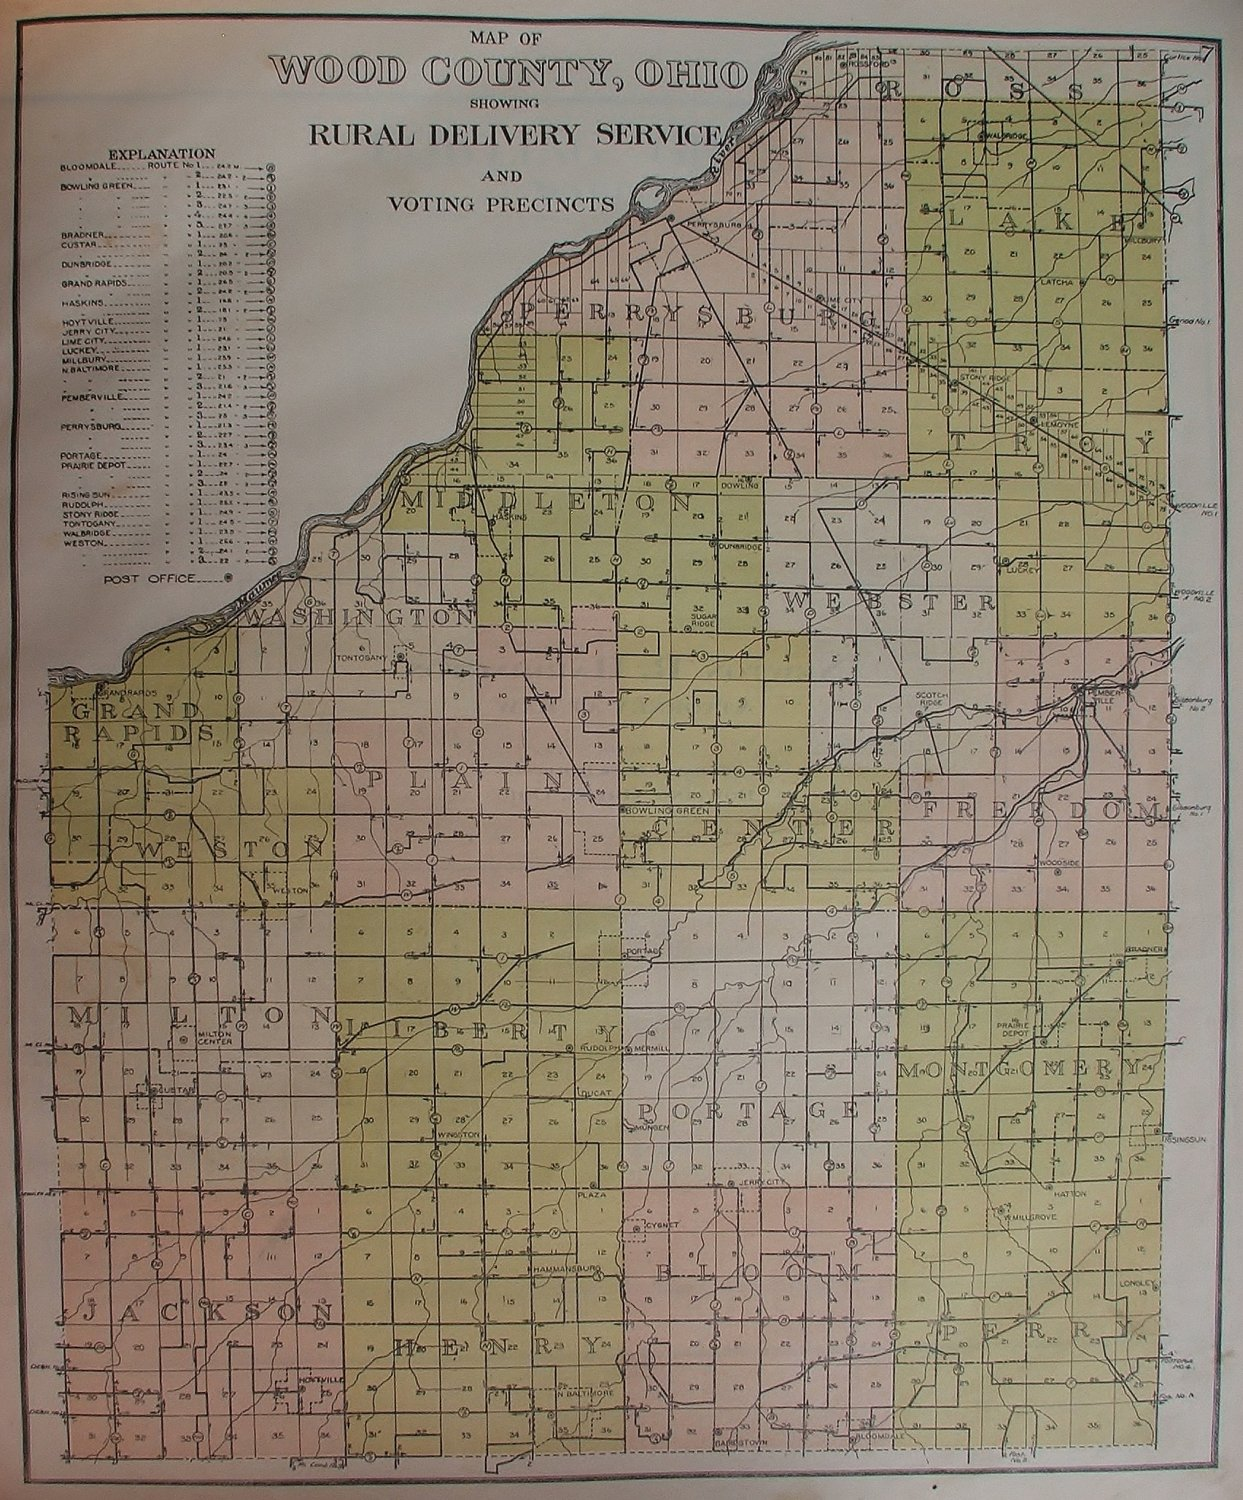 Wood County Ohio Map, Rural Delivery, Voting Precincts c 1912